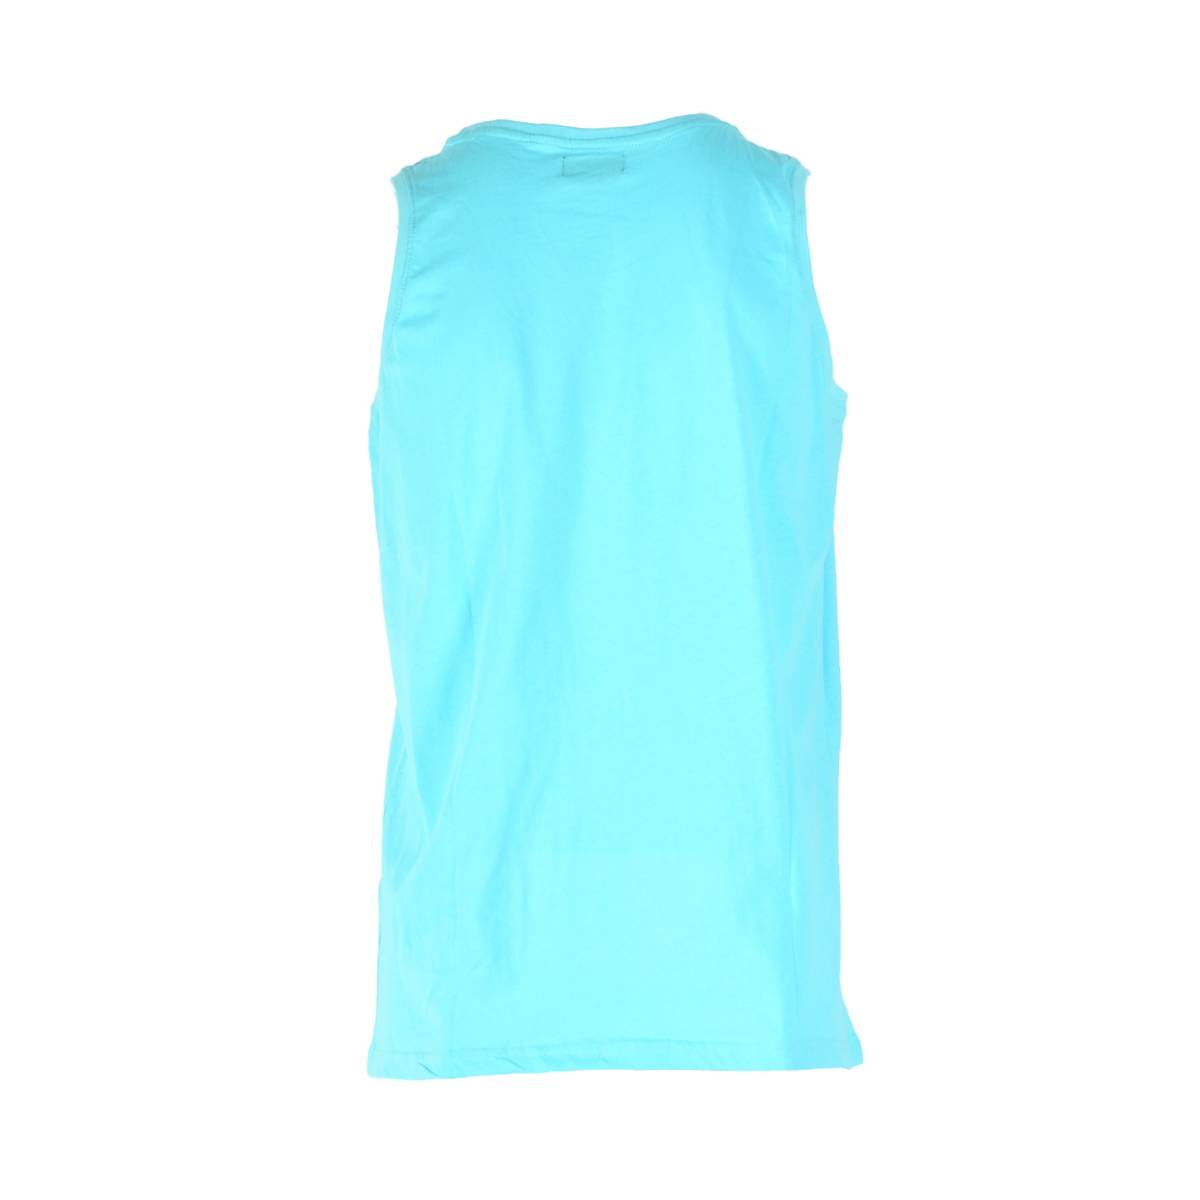 East Street 6 RE-MS-191 SINGLET MOTOR Blauw